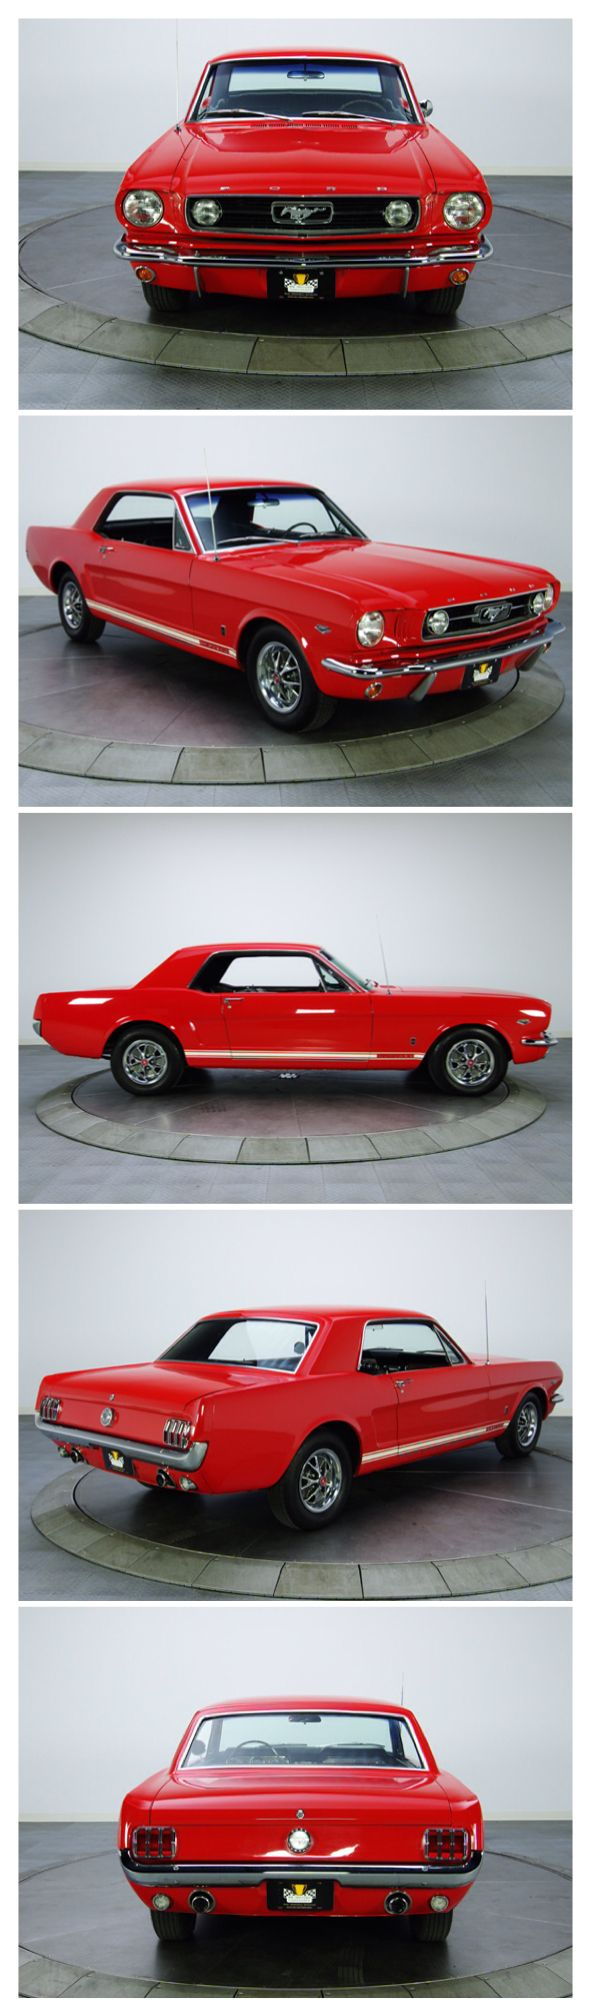 1966 Ford Mustang GT..Re-pin Brought to you by agents of car insurance at #HouseofInsurance in #EugeneOregon for #CarInsurance